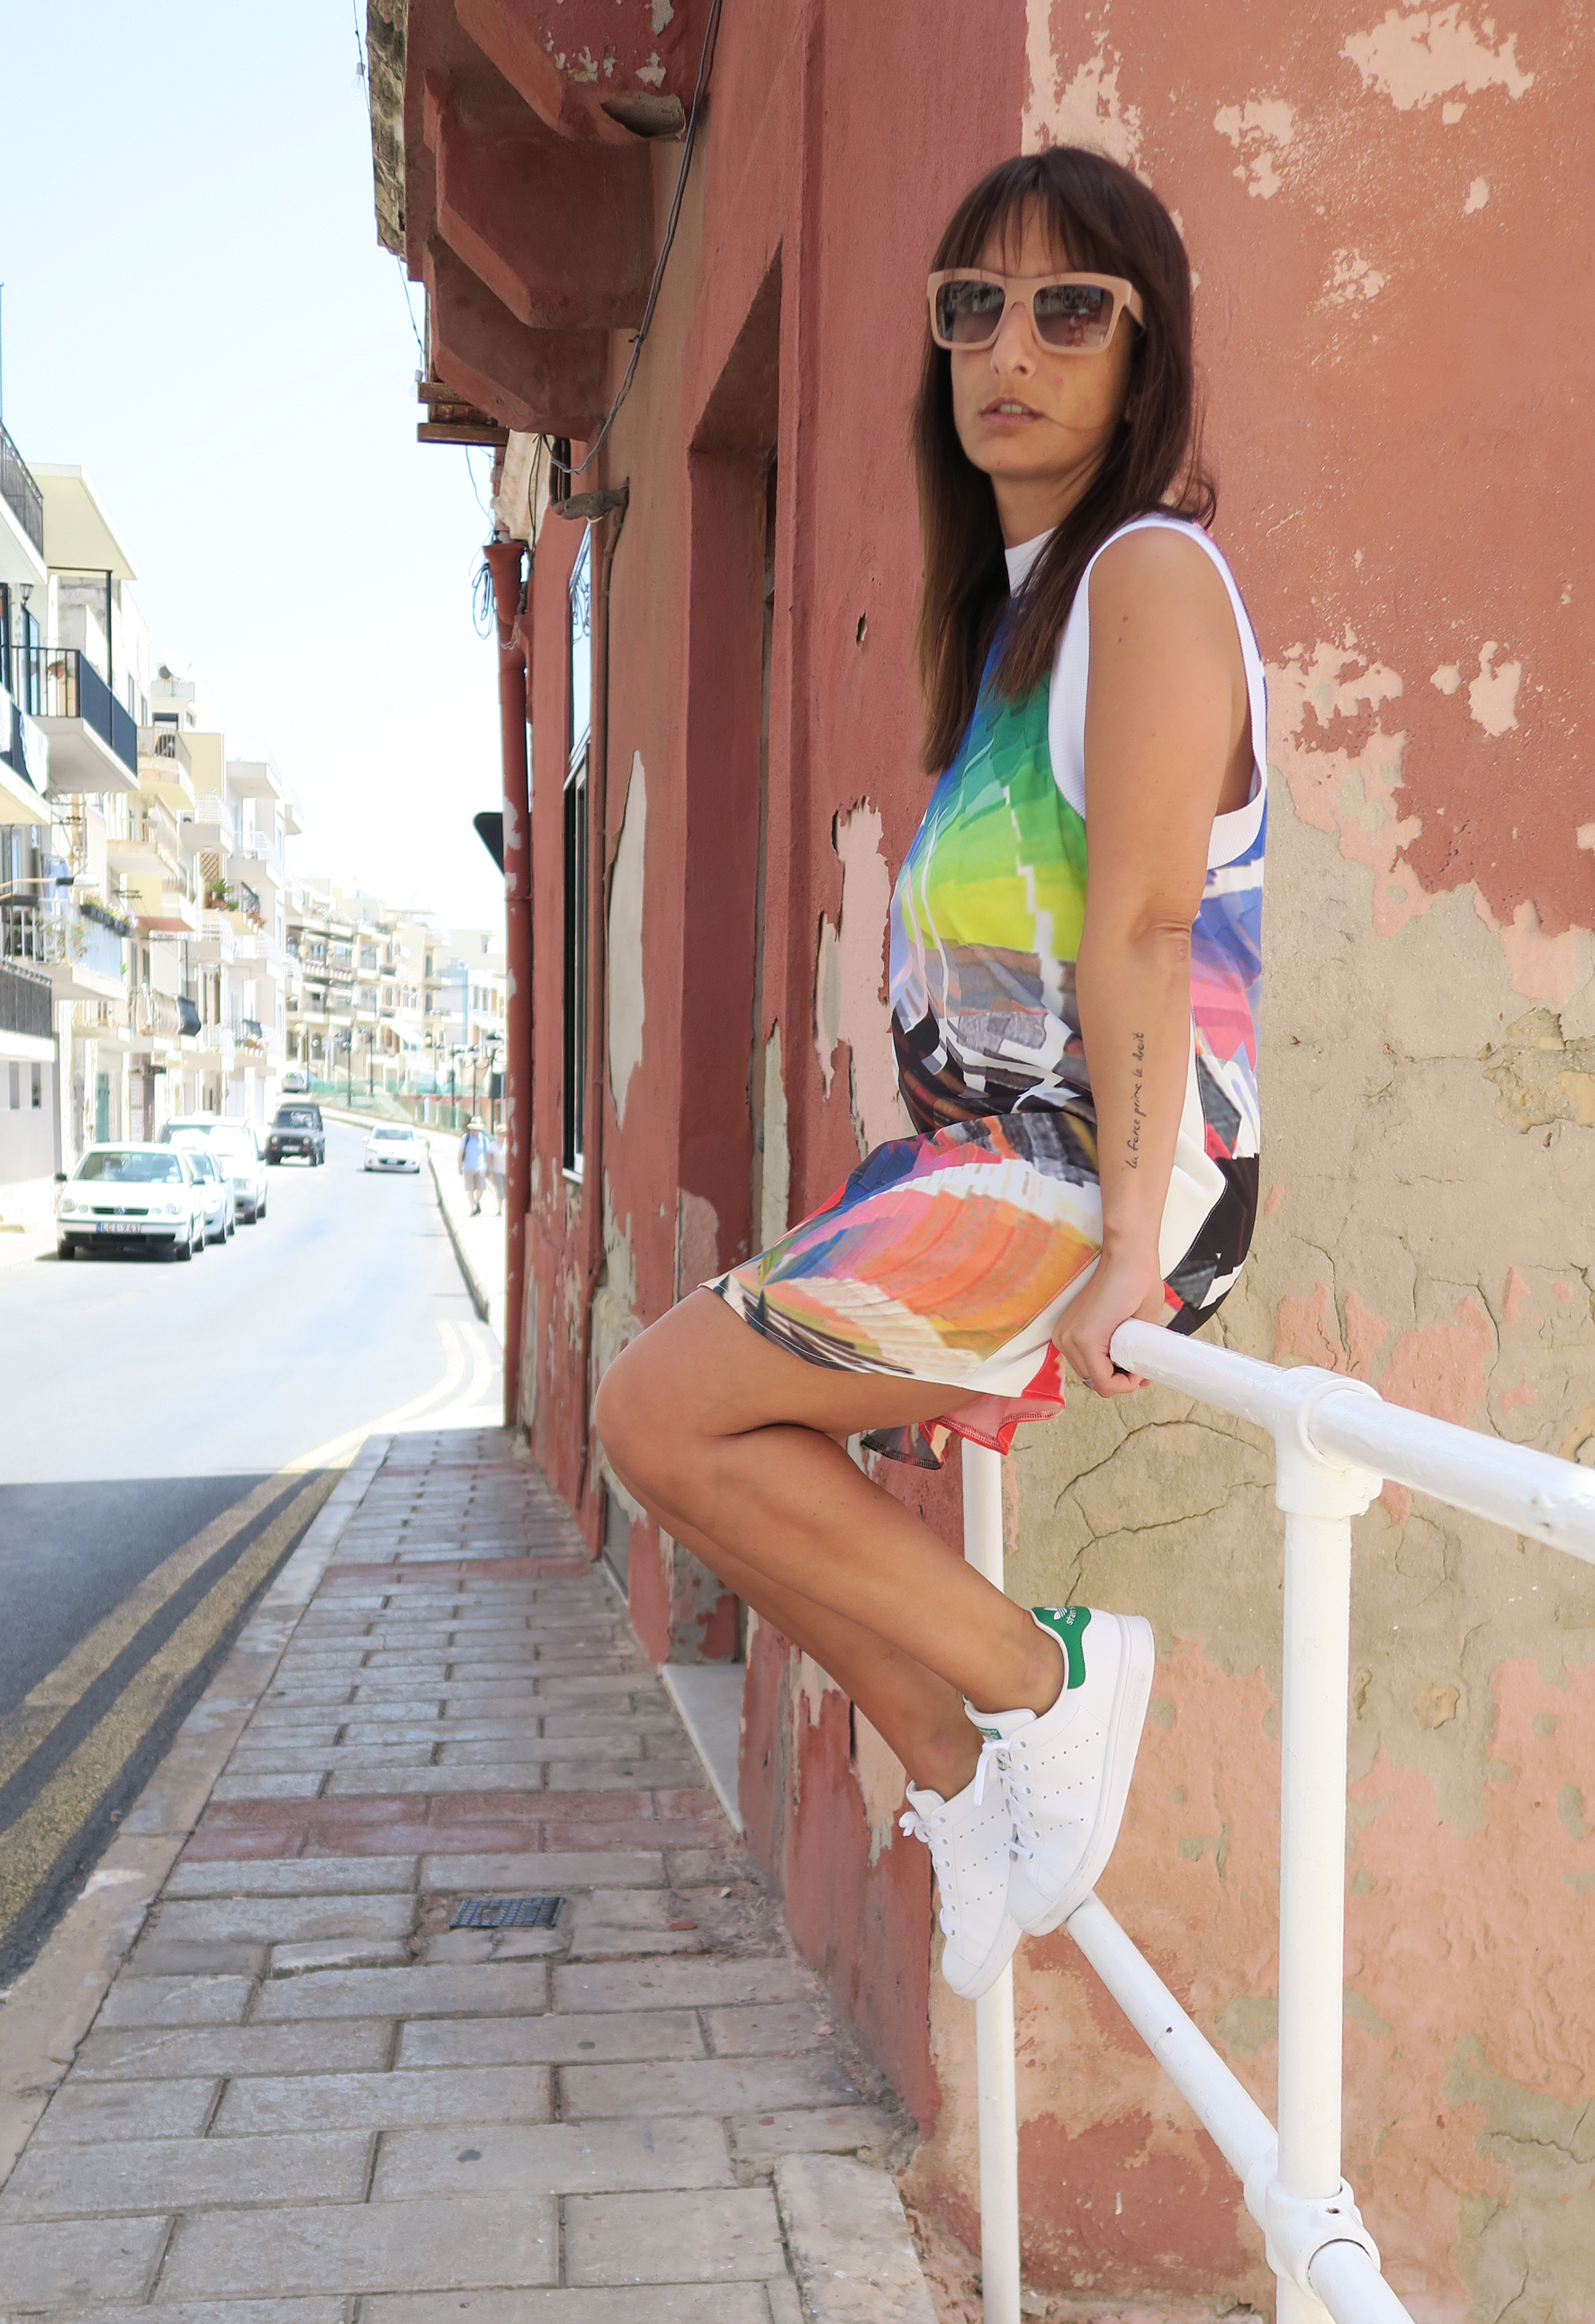 streetstyle-stansmith-adidas-blogger-bloggerstyle-outfit-modesalat-1